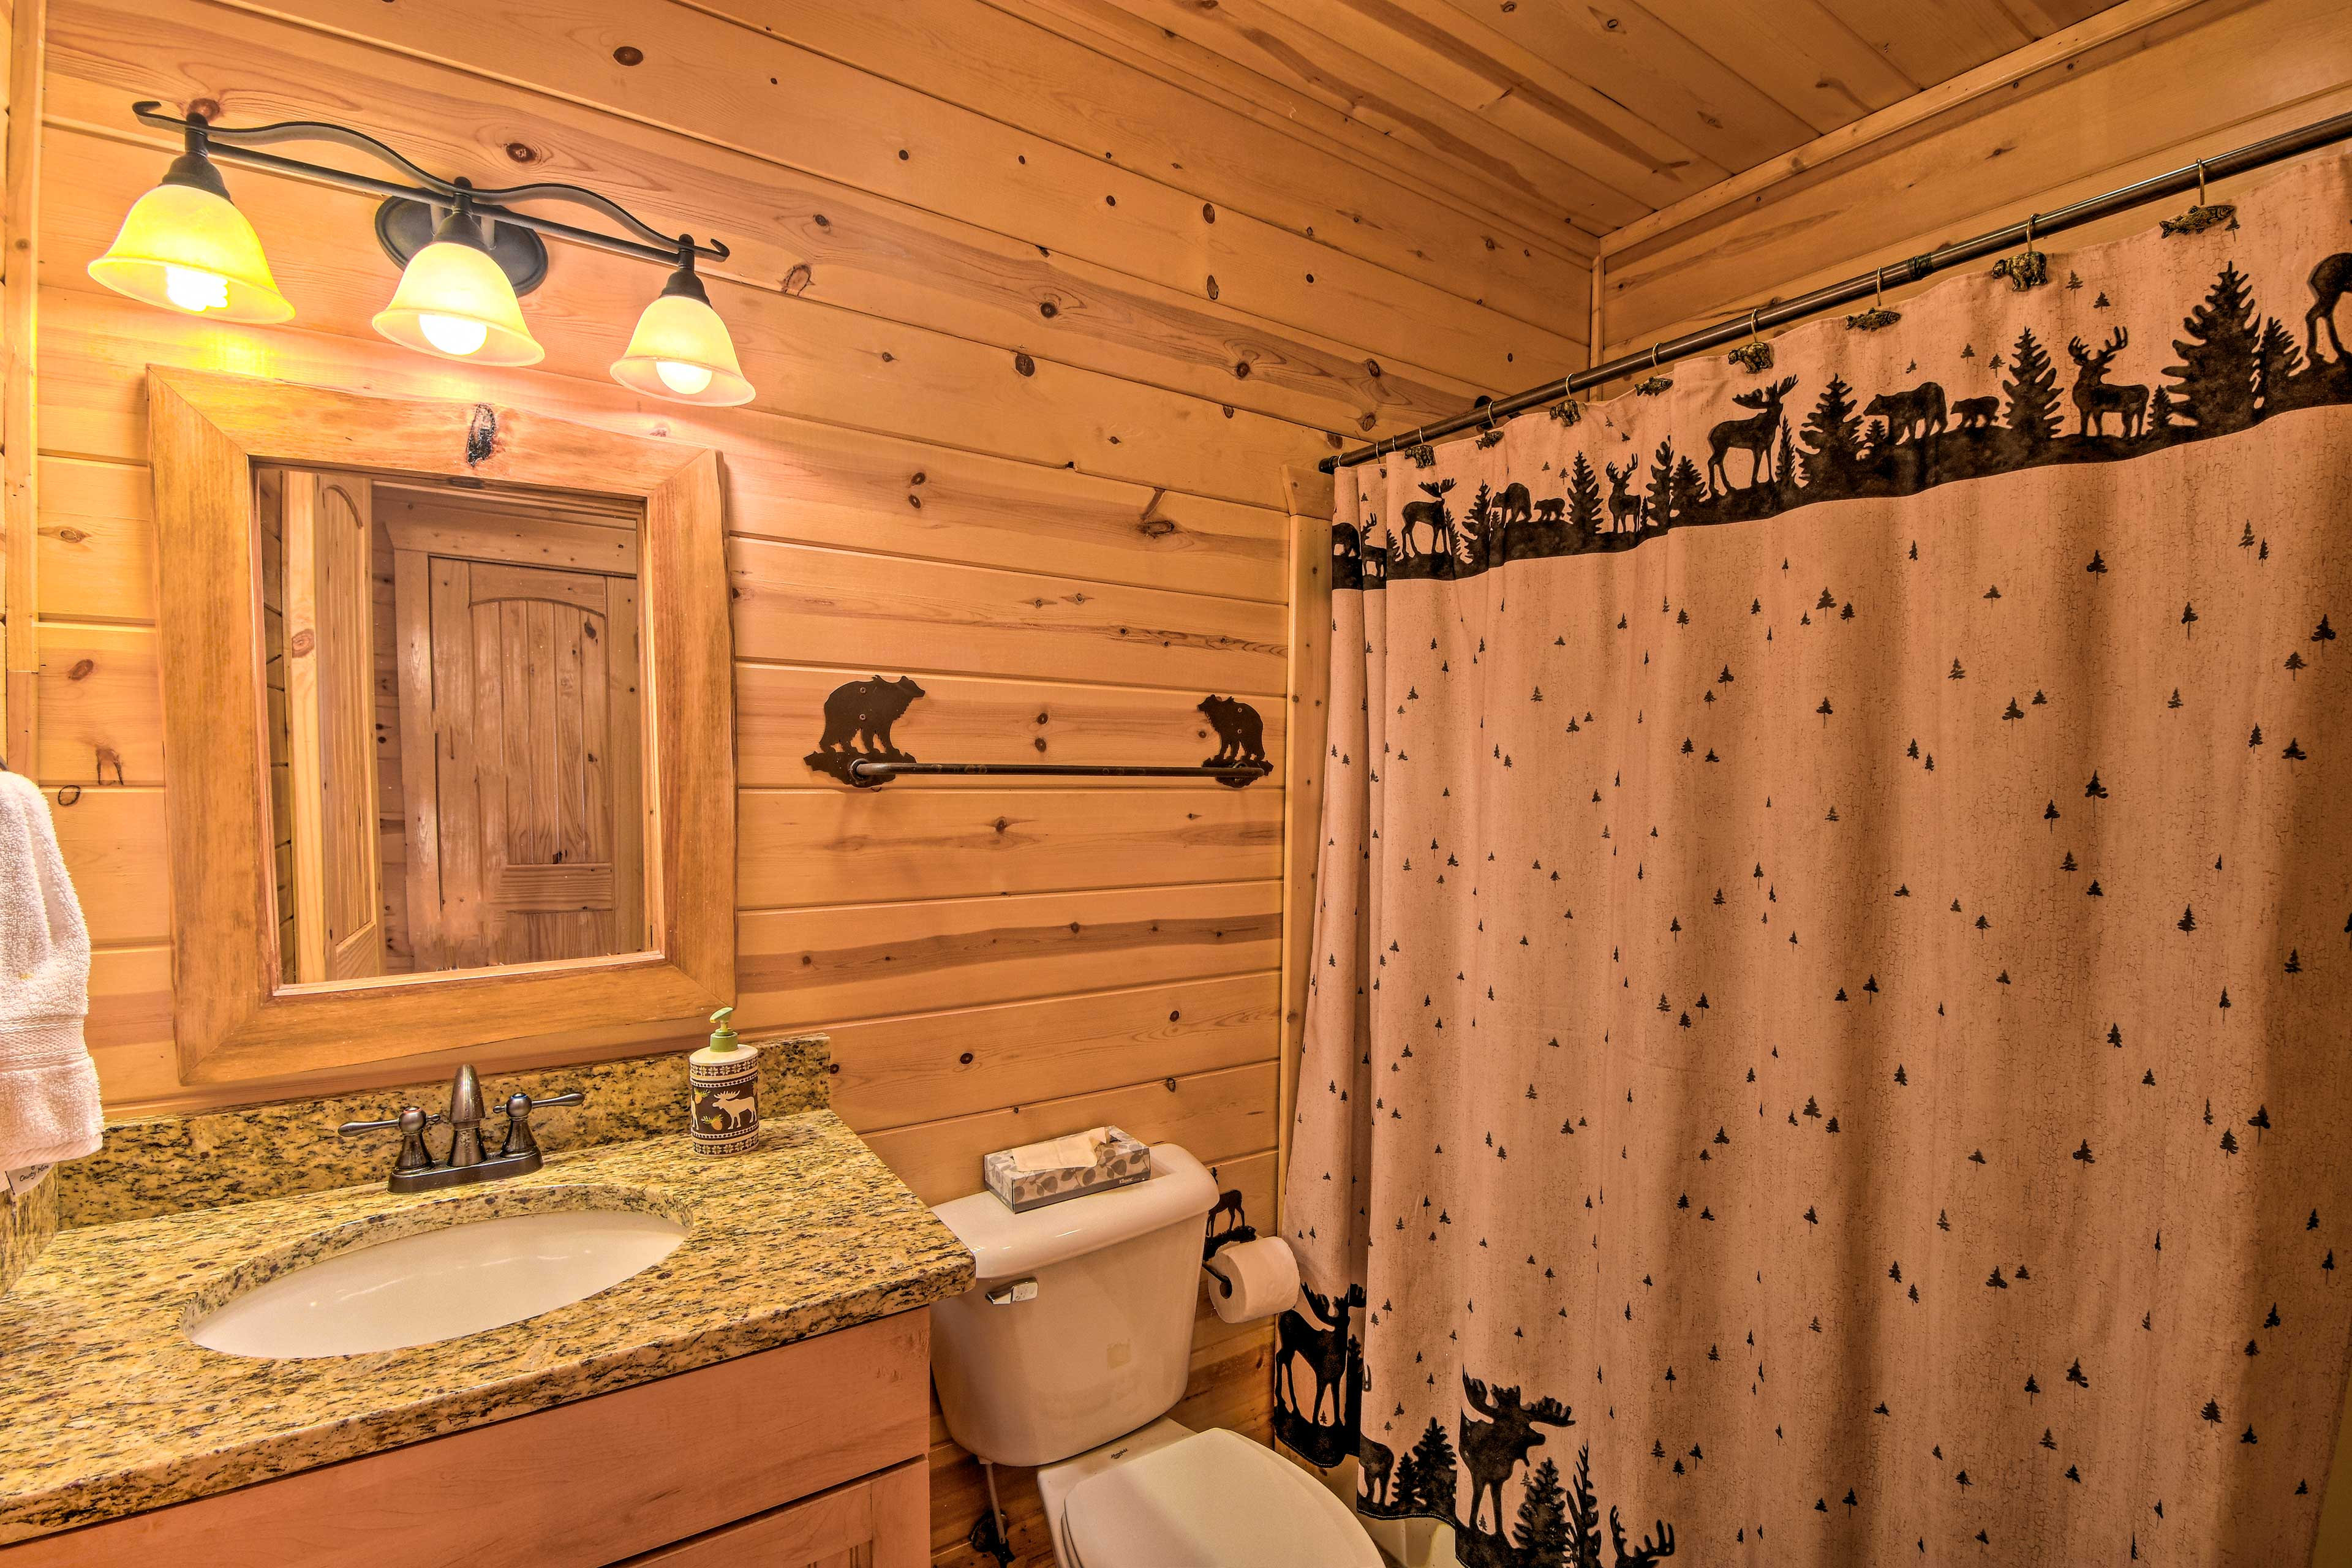 Rinse off in the third bath's shower/tub combo.